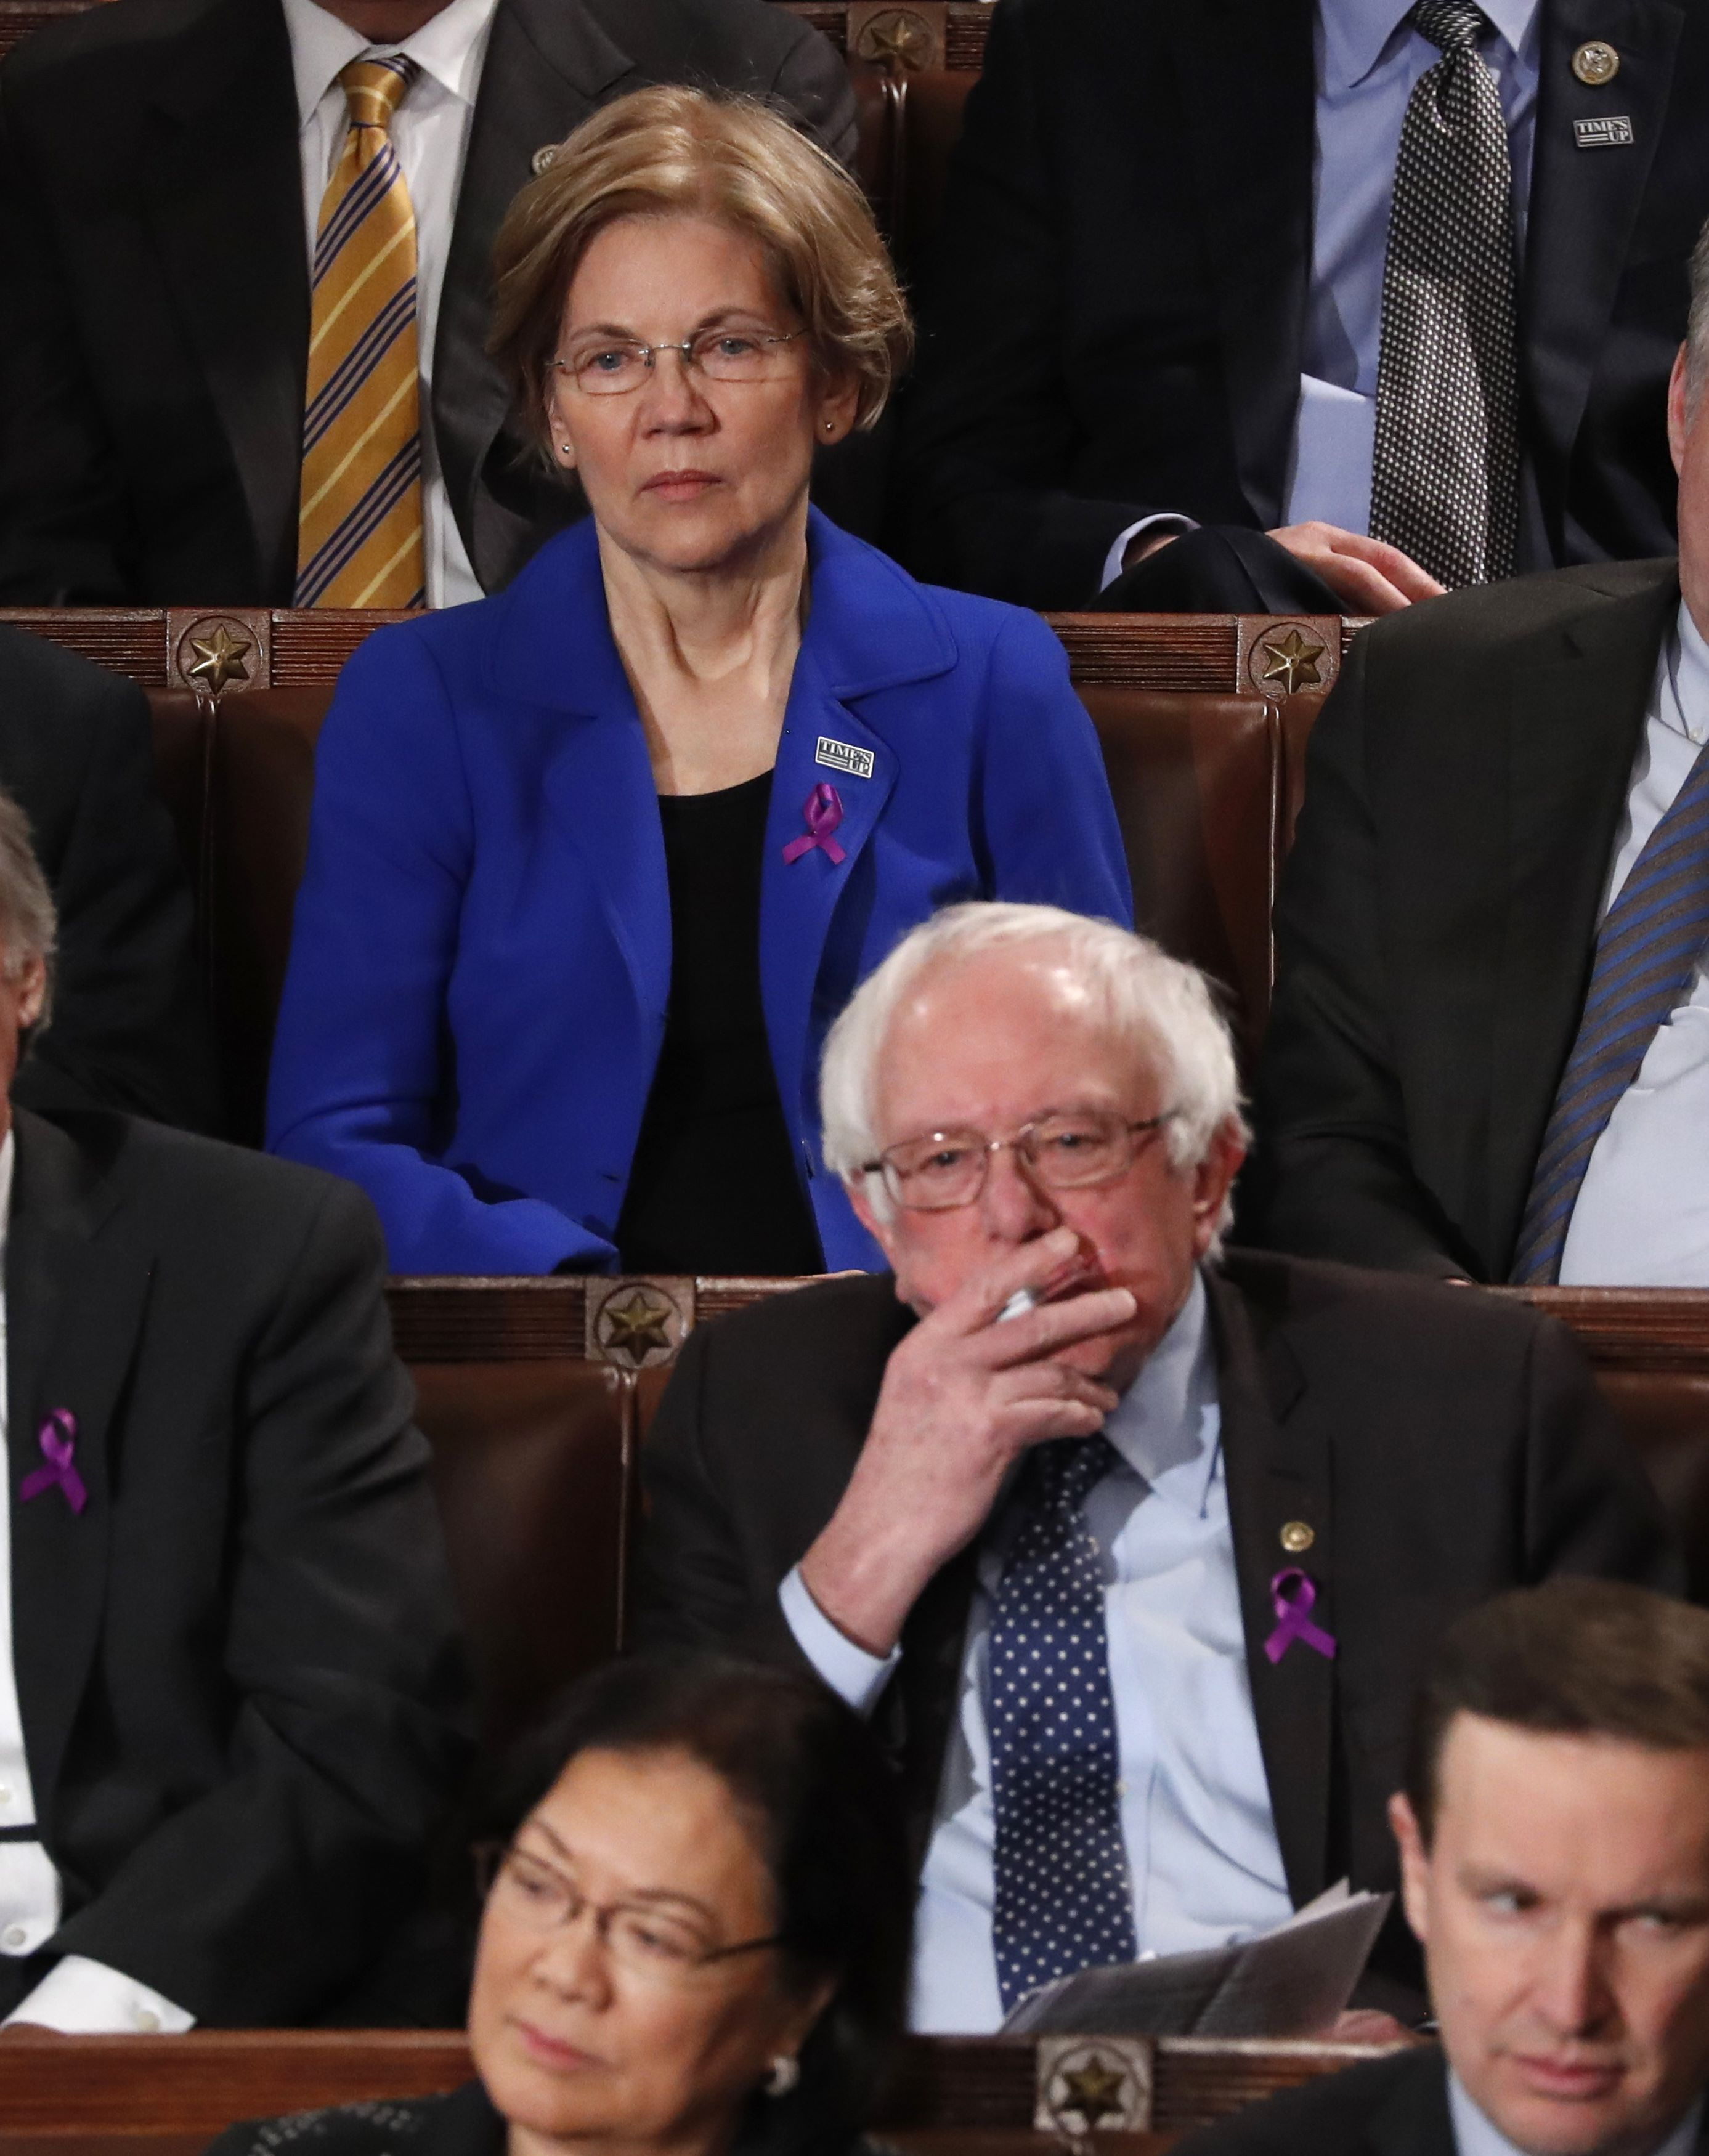 Senators listen as U.S. President Trump delivers his State of the Union address in Washington